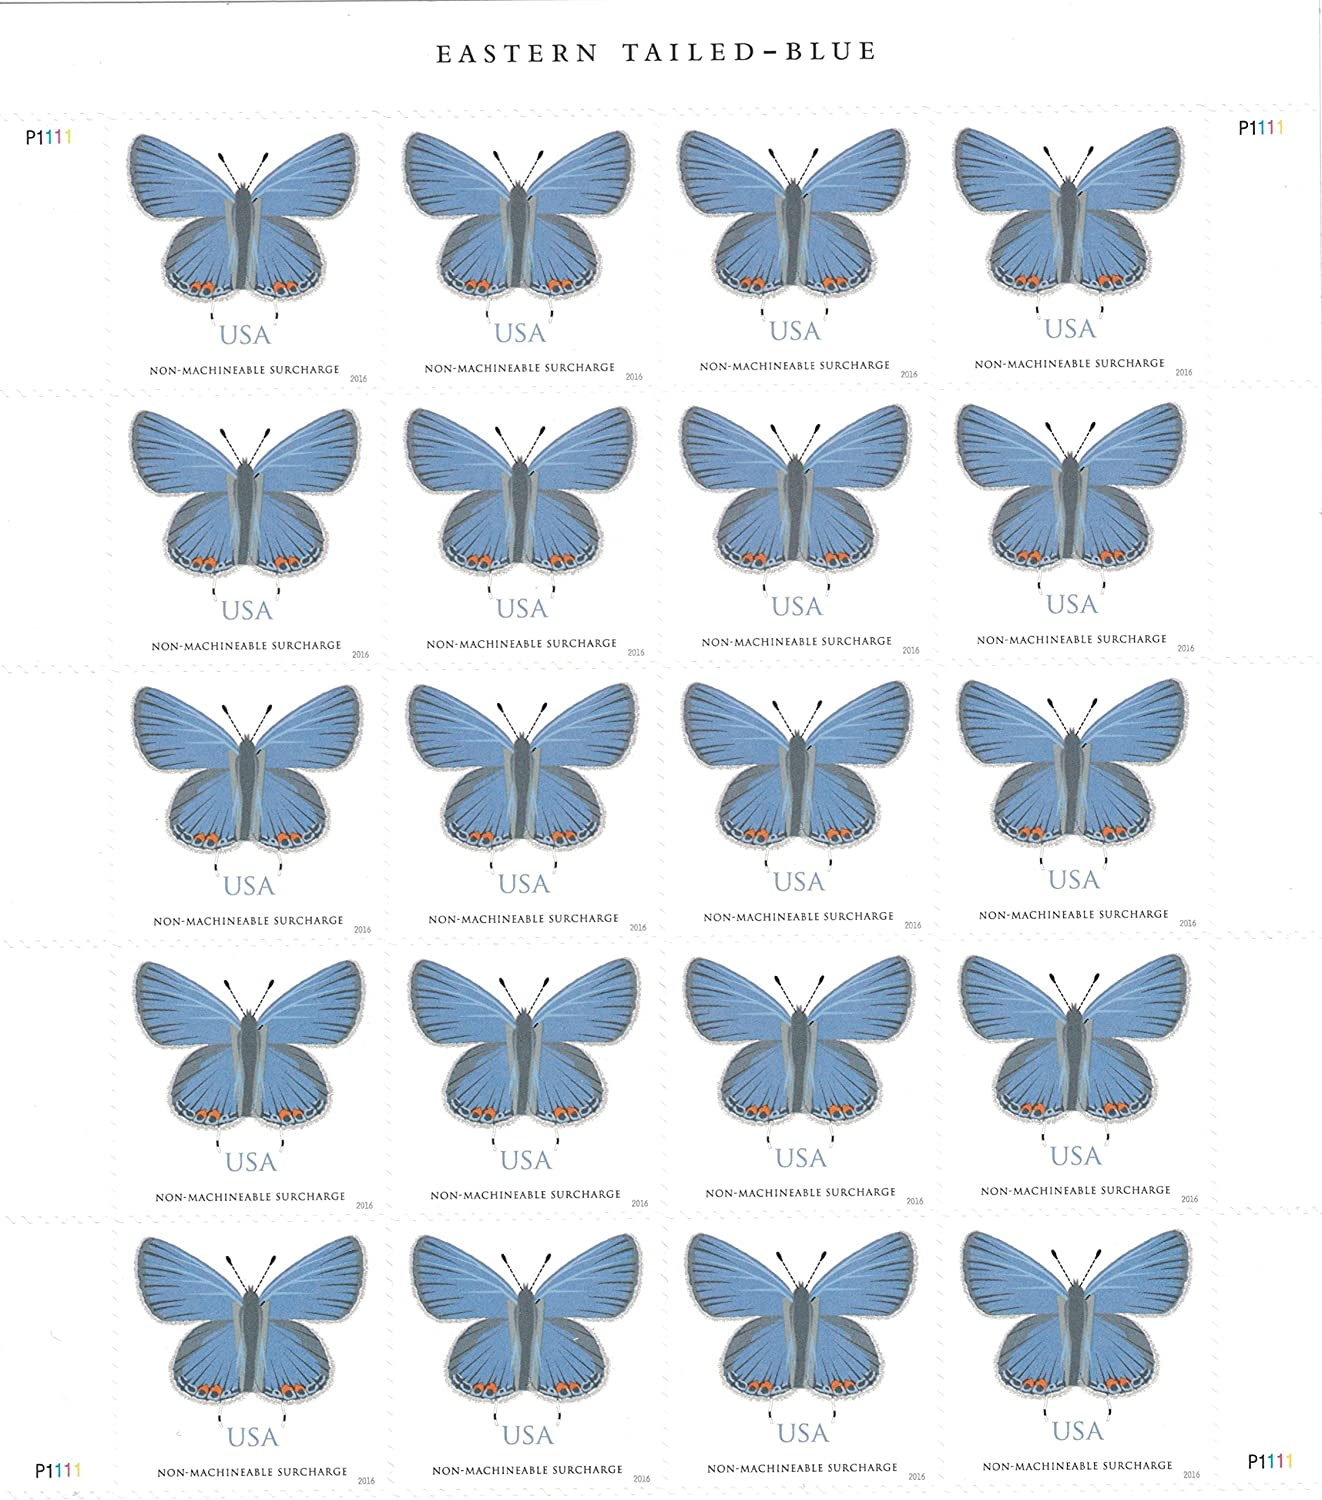 Eastern Tailed-Blue - Sheet of 20 Non-machinable Rate Postage Stamps Scott 5136